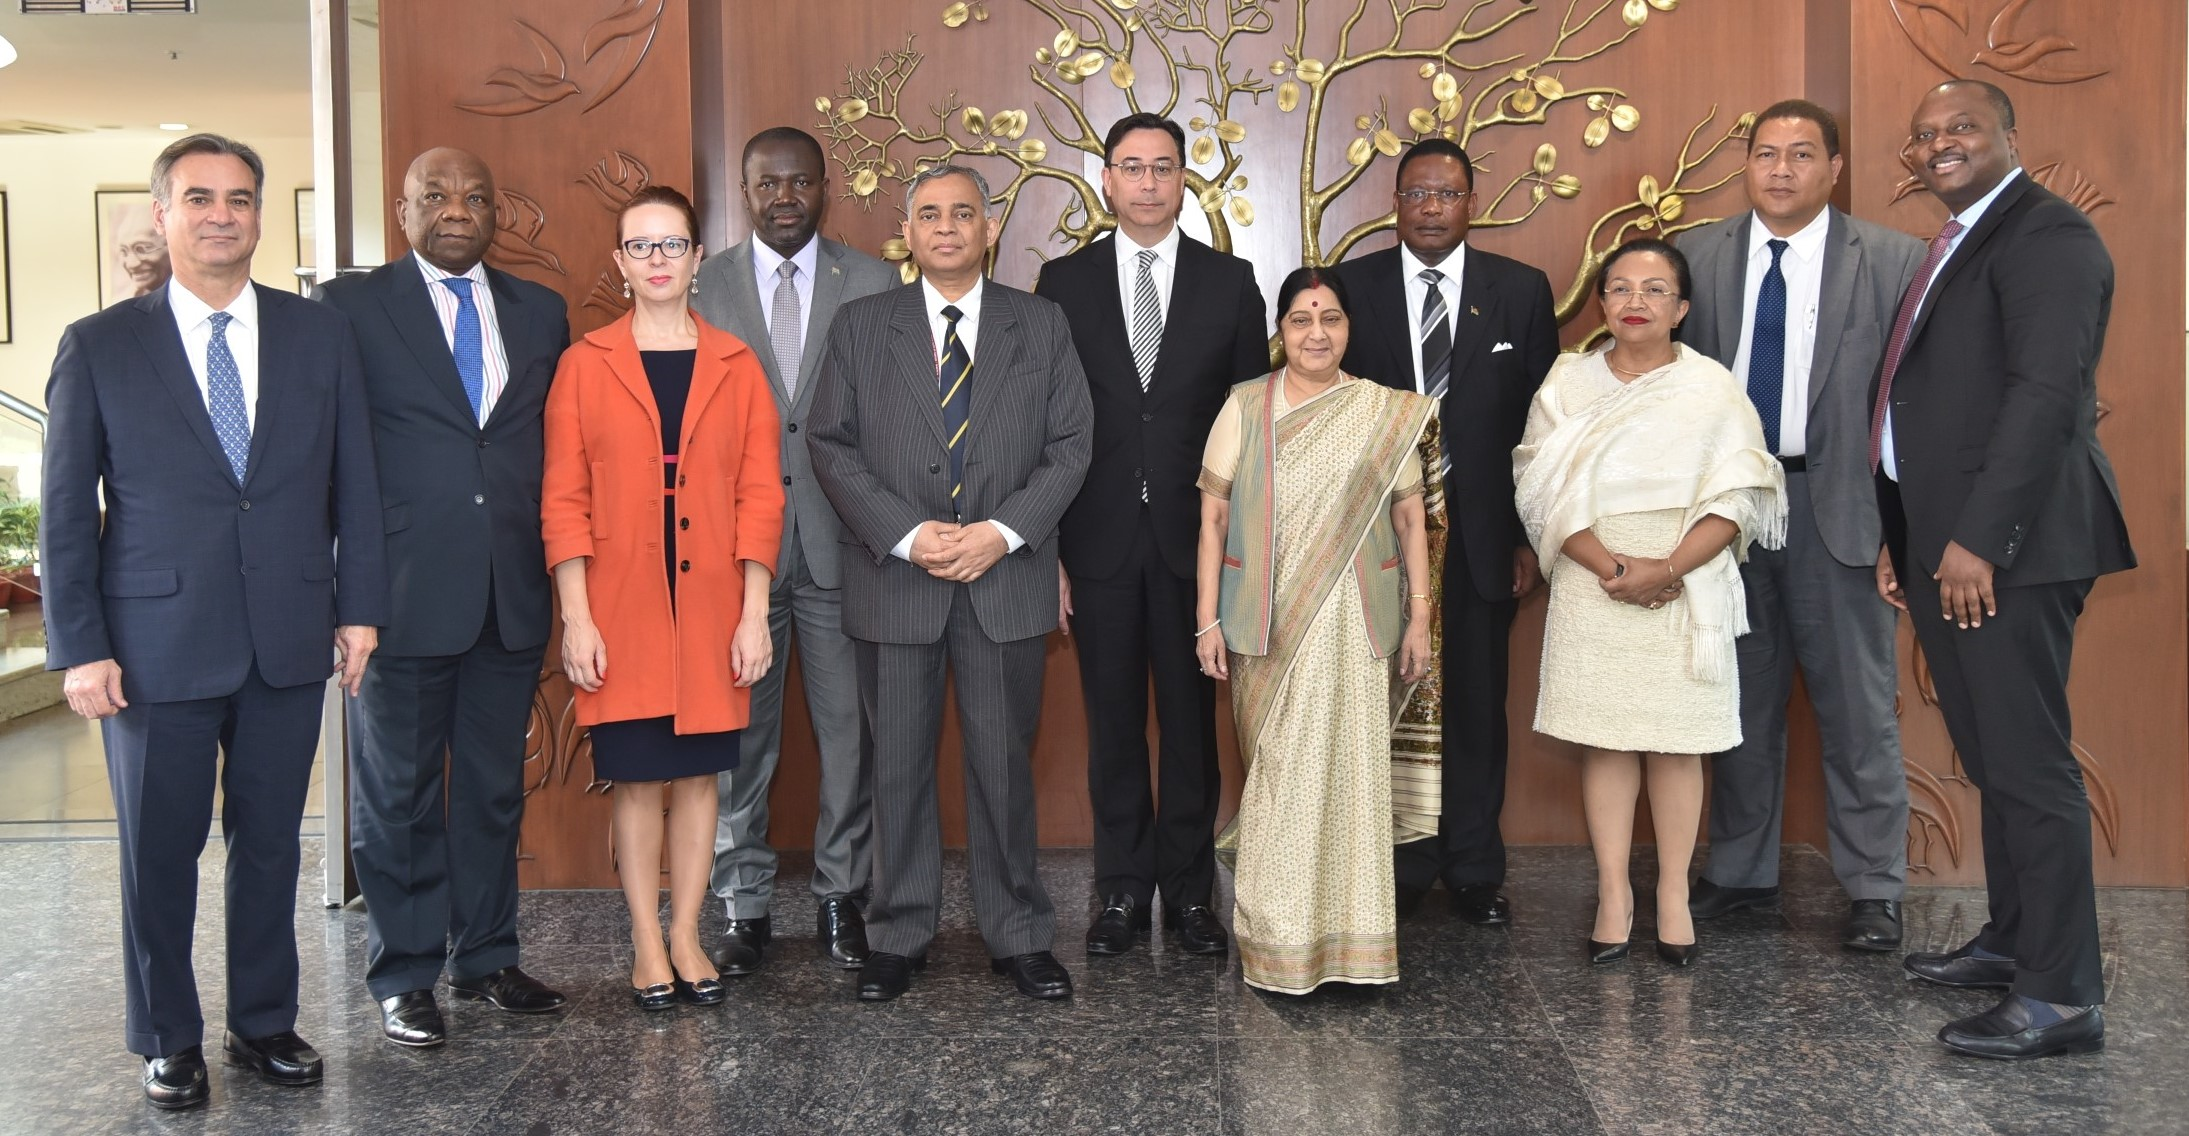 External Affairs Minister meets Group of Permanent Representatives to the United Nations in New Delhi